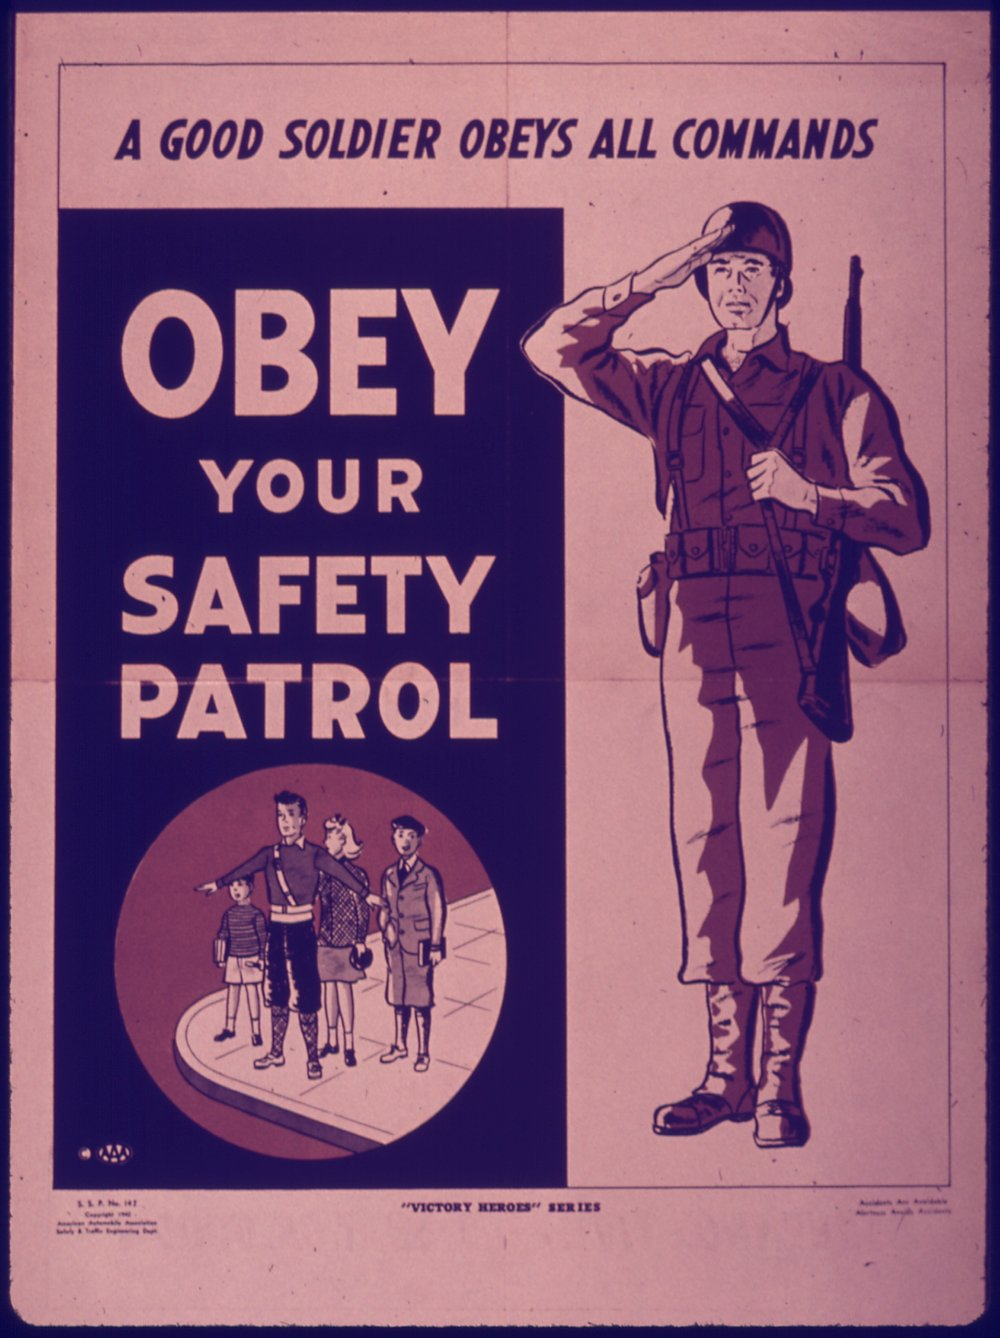 OBEY_YOUR_SAFETY_PATROL._A_GOOD_SOLDIER_OBEYS_ALL_COMMANDS_-_NARA_-_515096.jpg